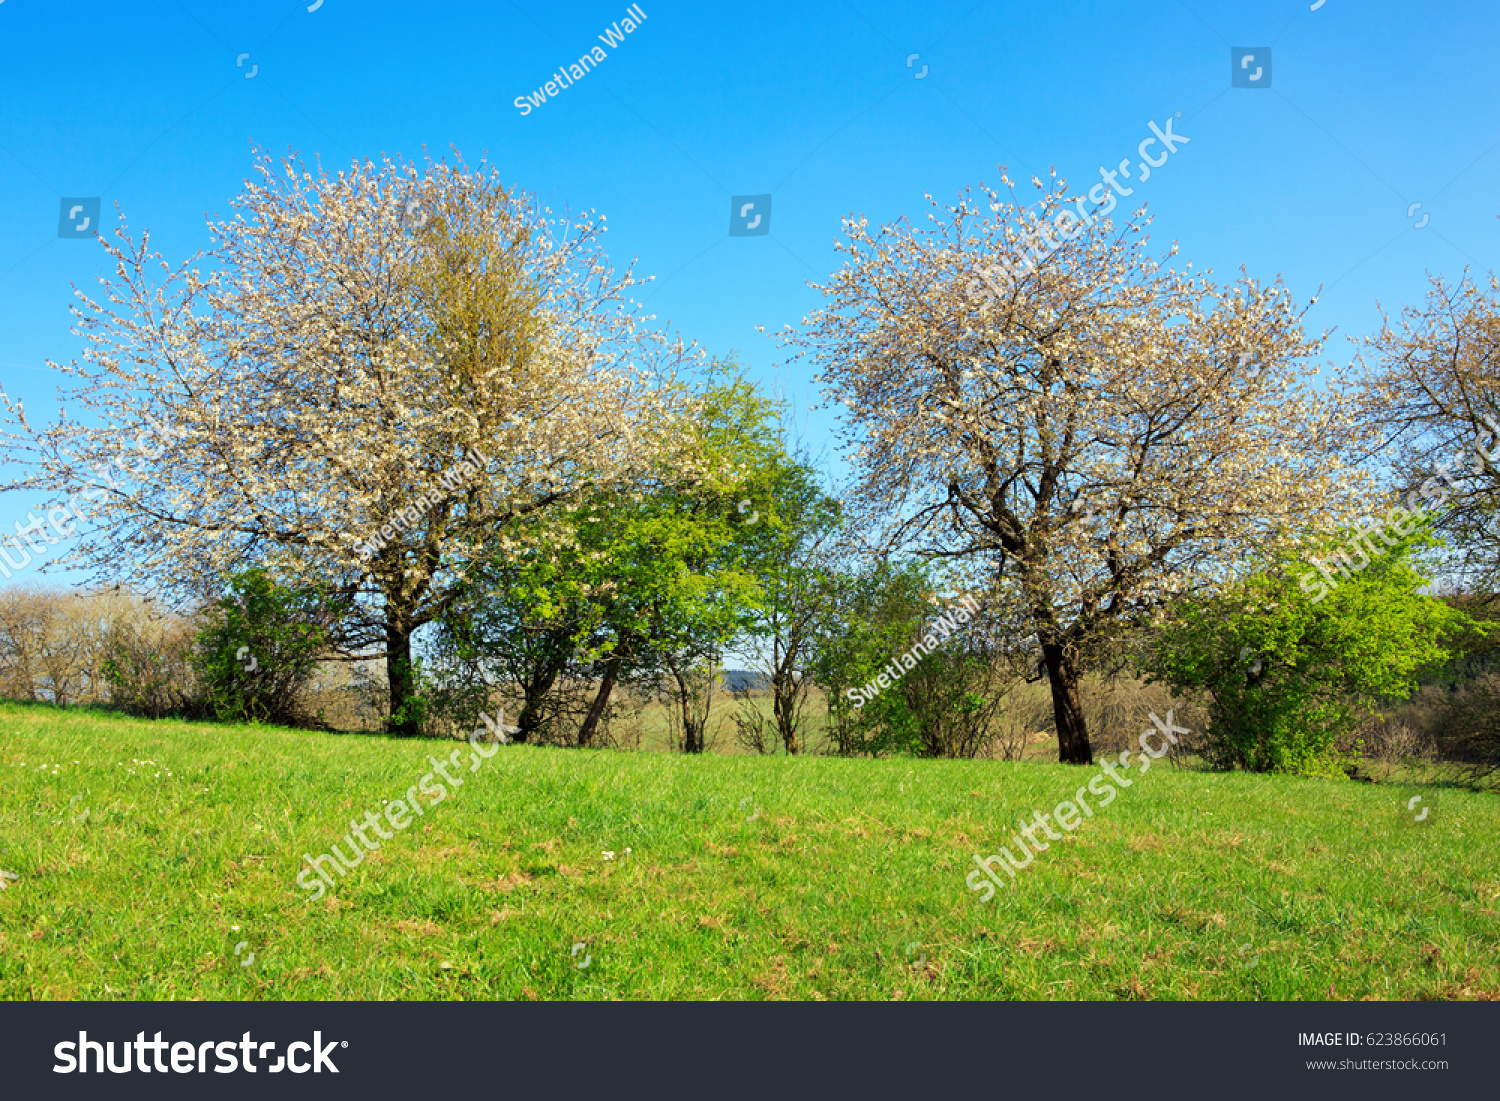 Flowering trees on meadow and blue sky ez canvas id 623866061 izmirmasajfo